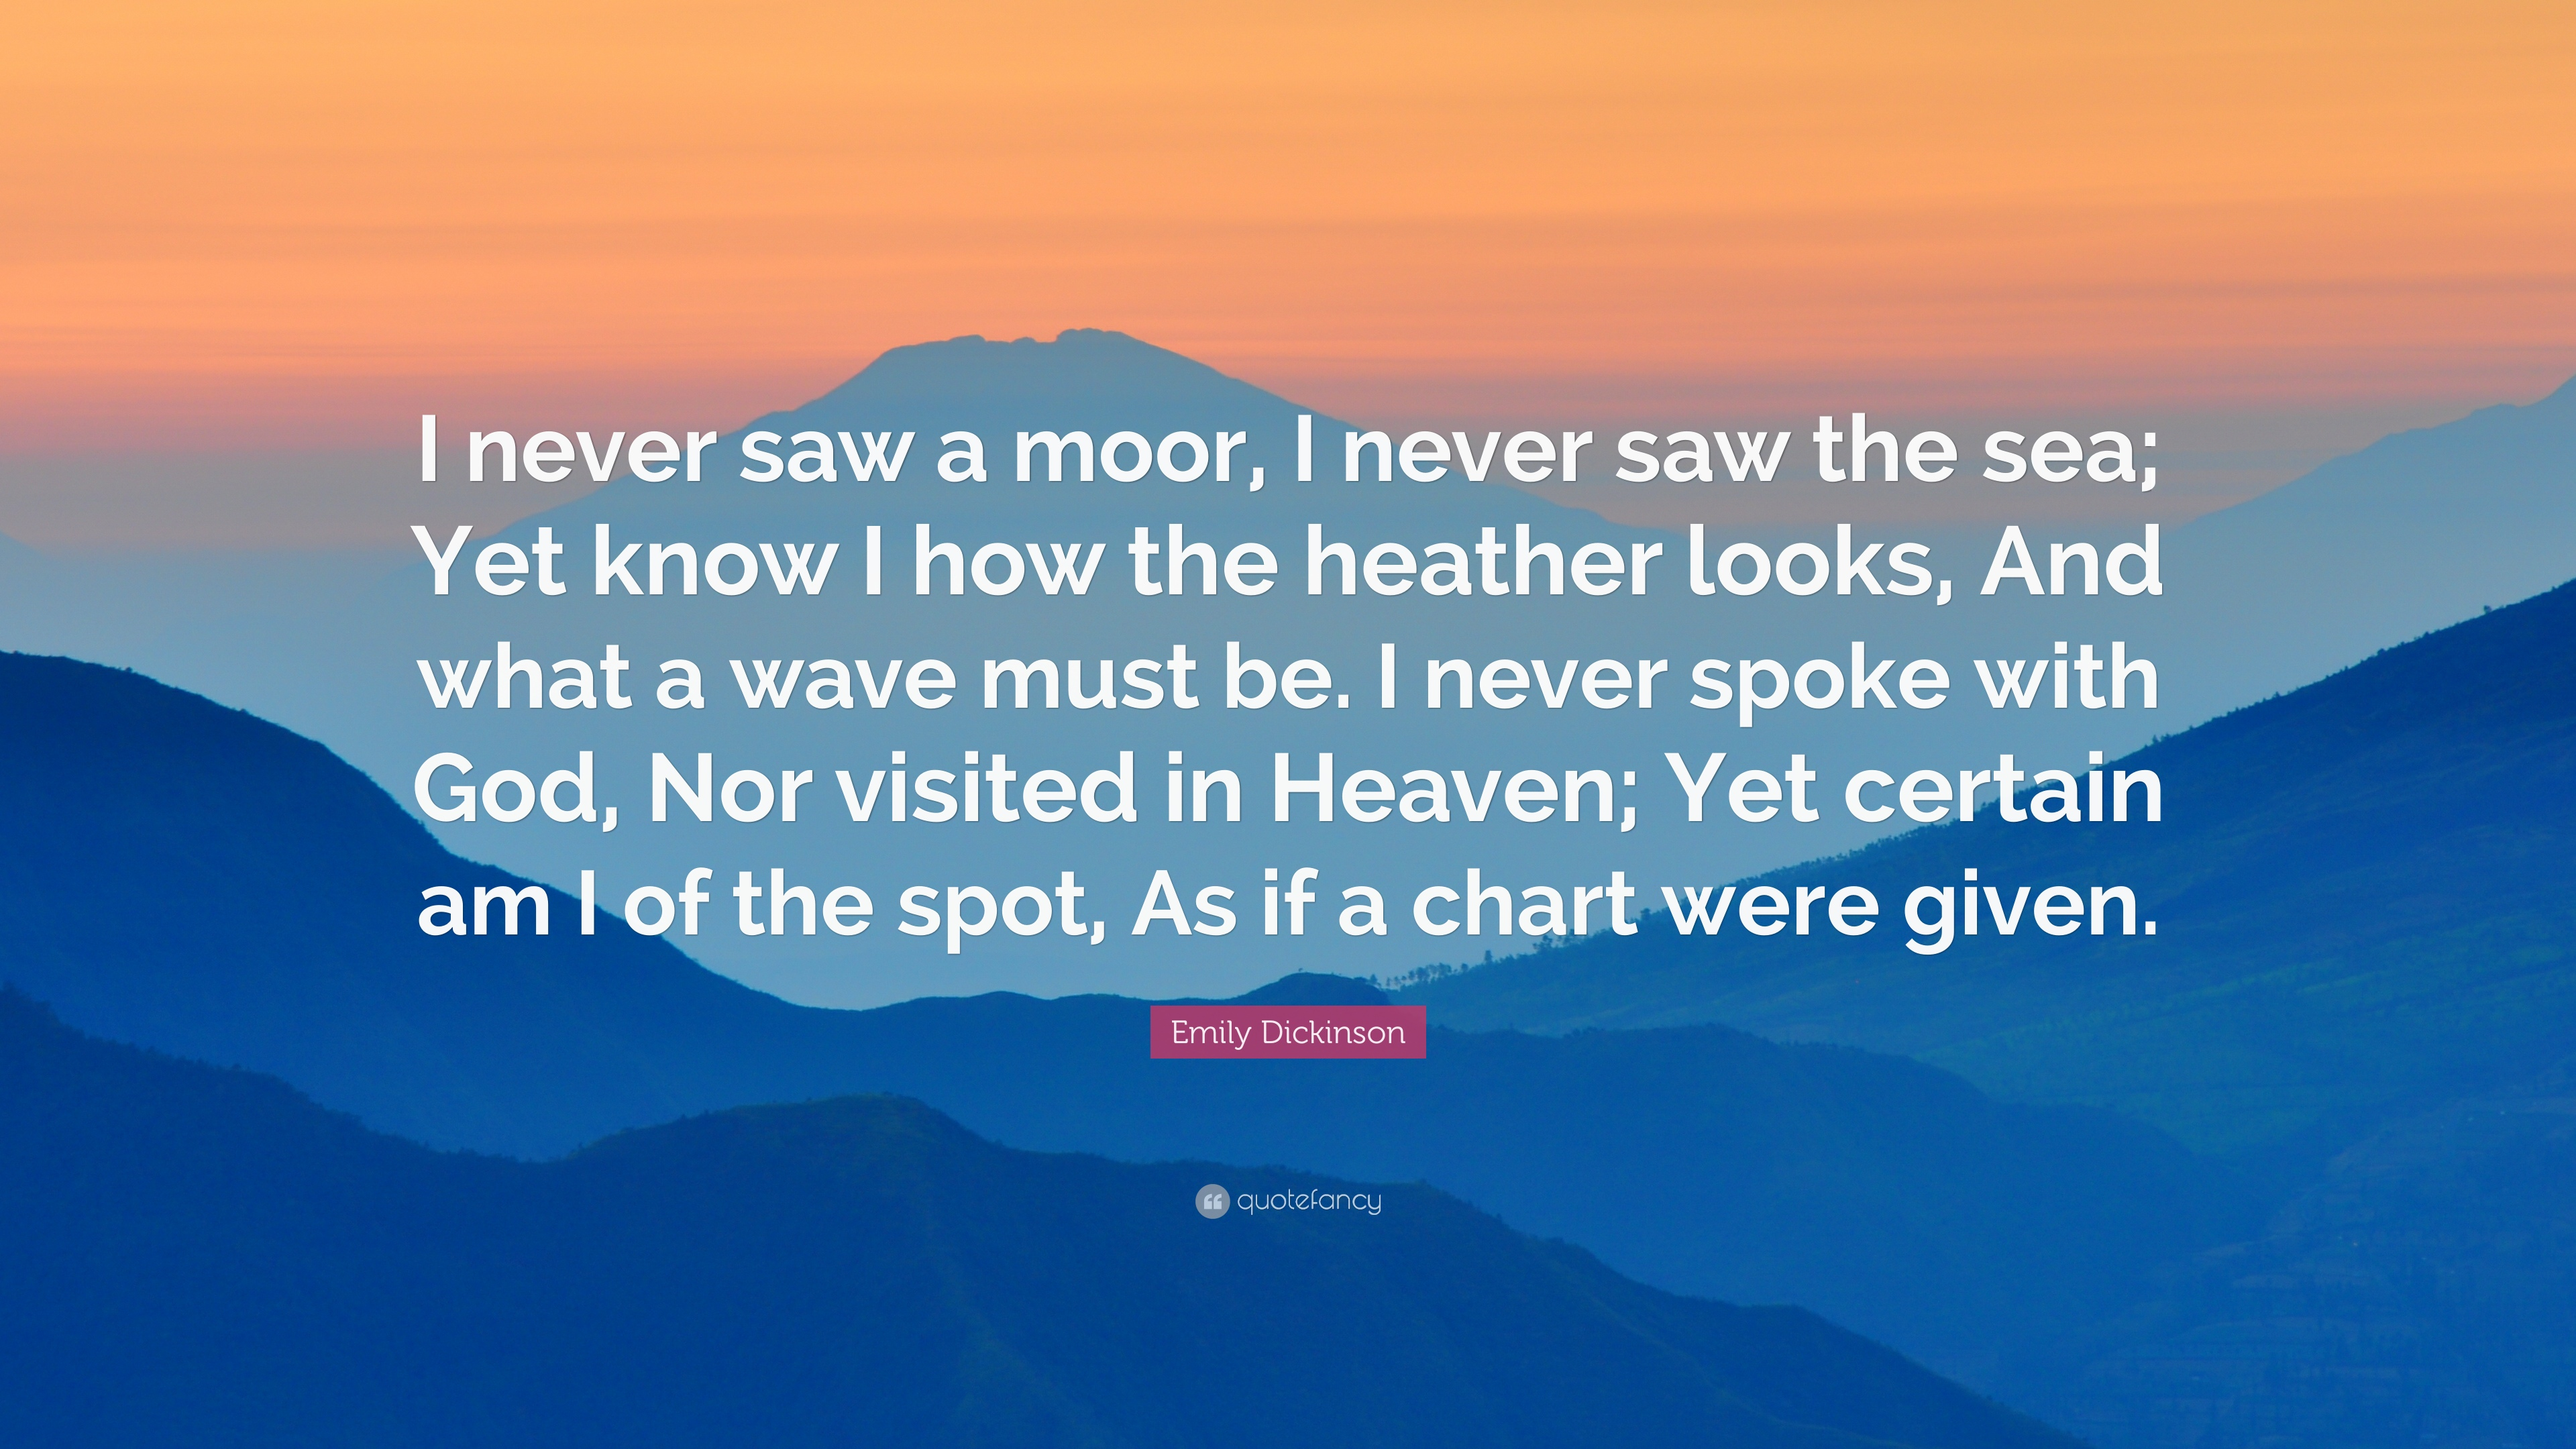 an analysis of i never saw a moor I never saw a moor - i never saw the sea - yet know i how the heather looks and what a billow be i never spoke with god nor visited in heaven - yet certain am i of the spot as if the checks were given.